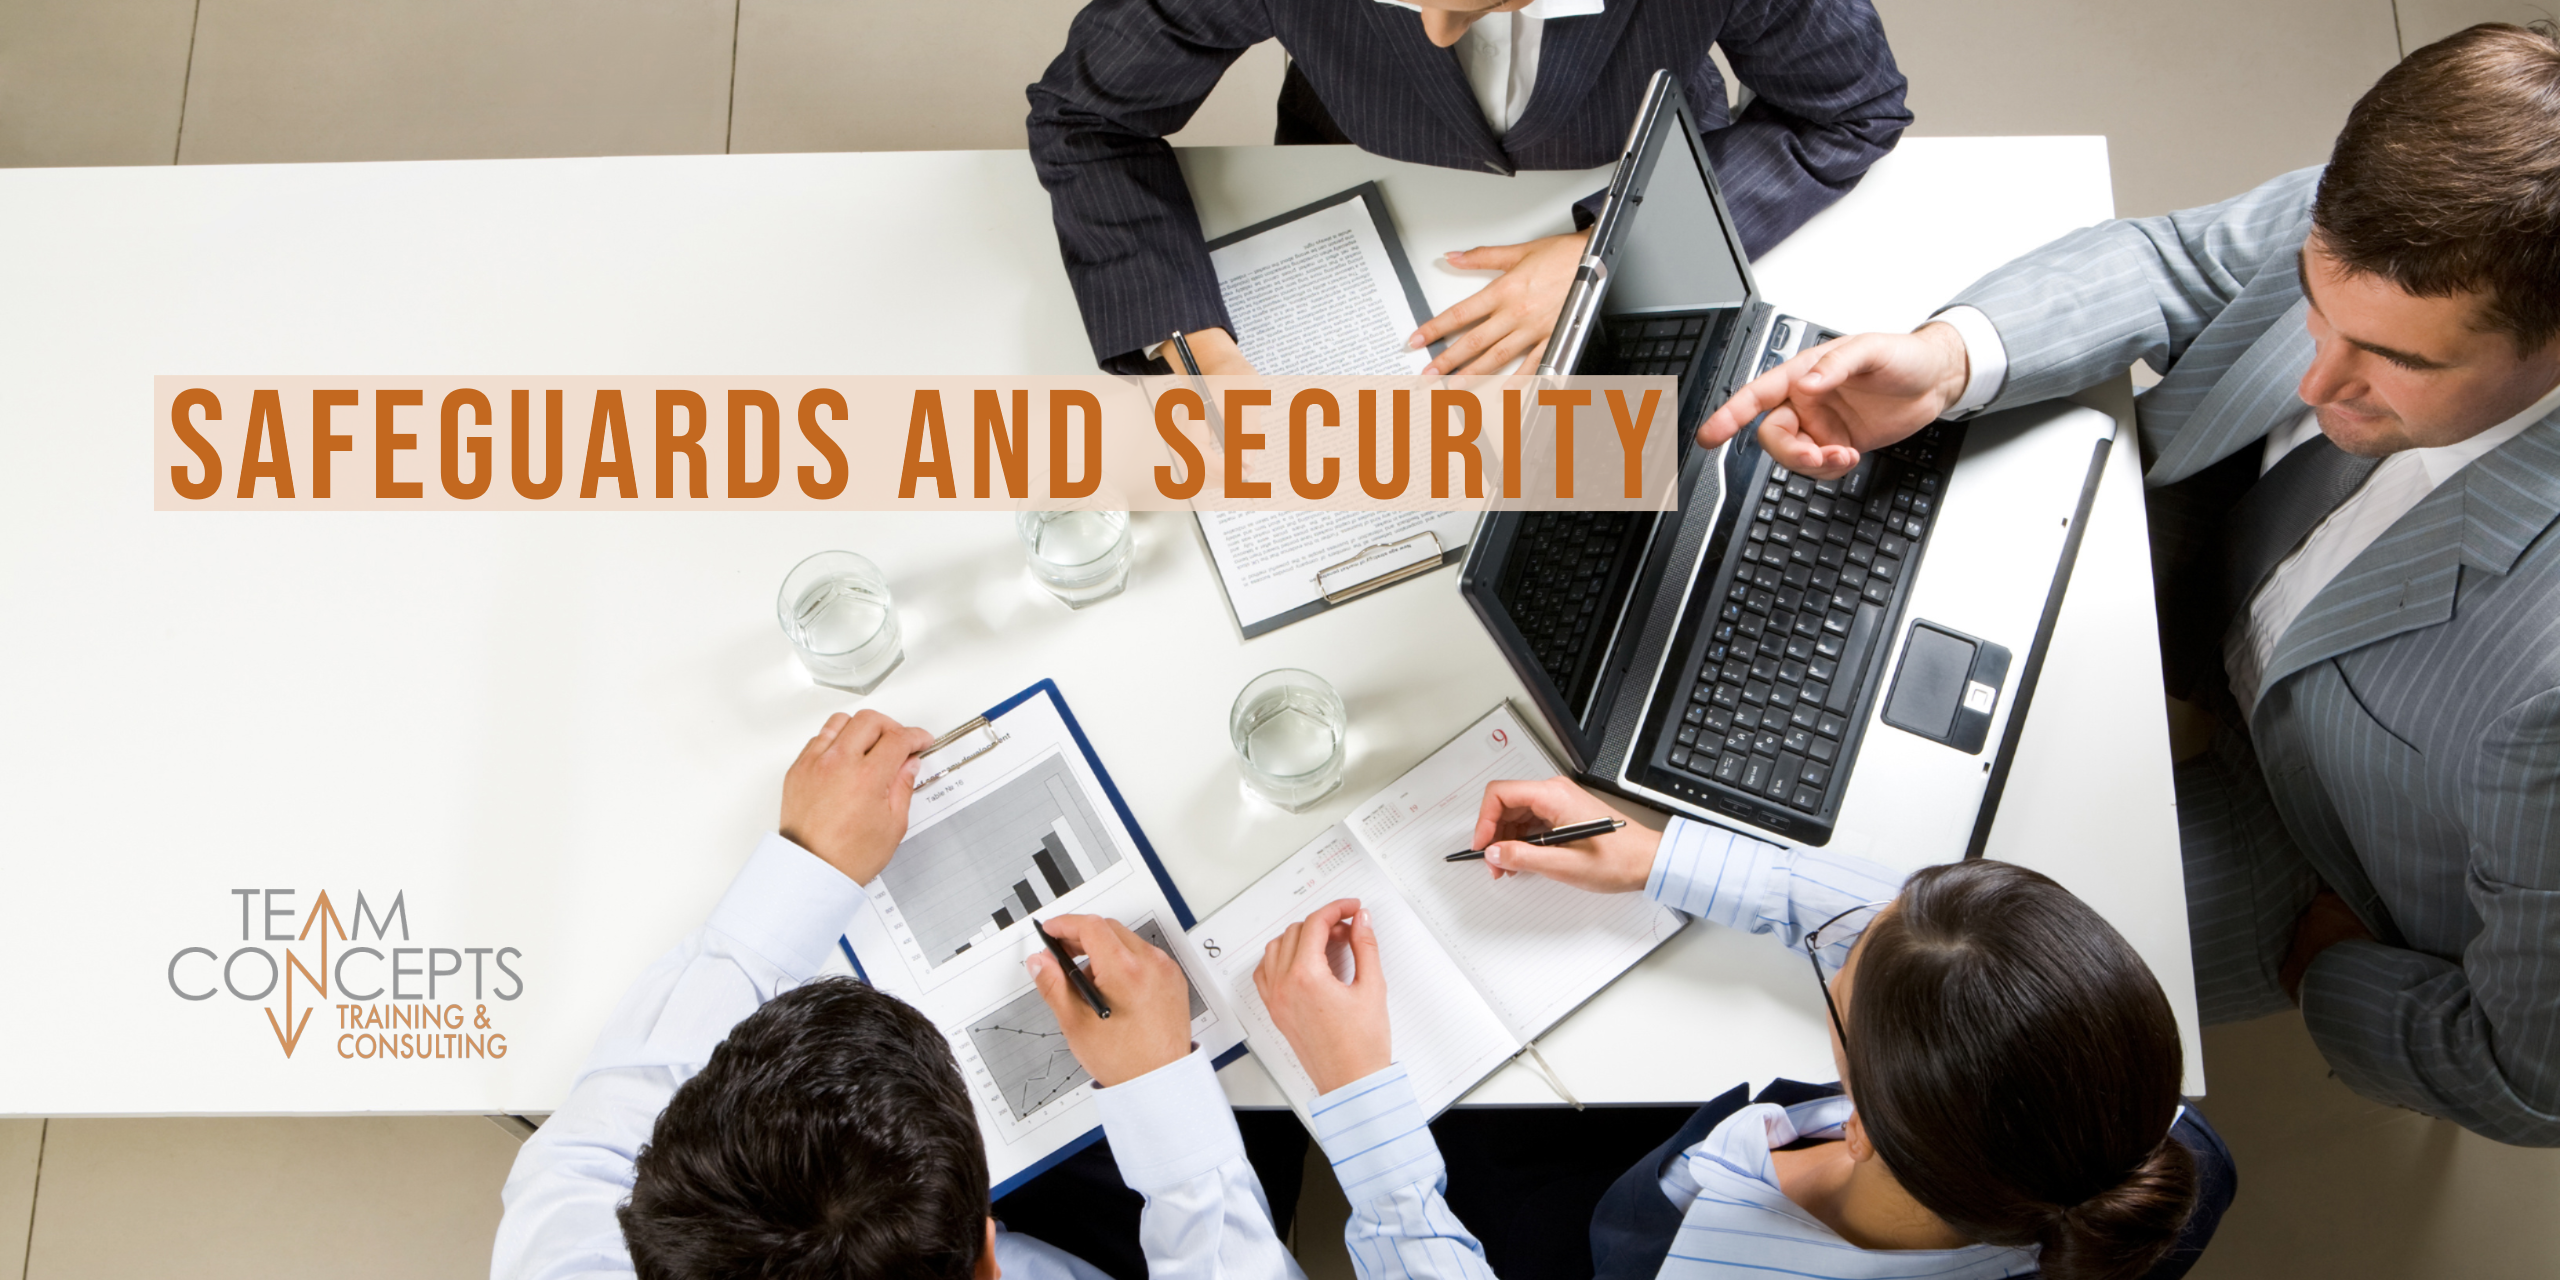 Safeguards And Security